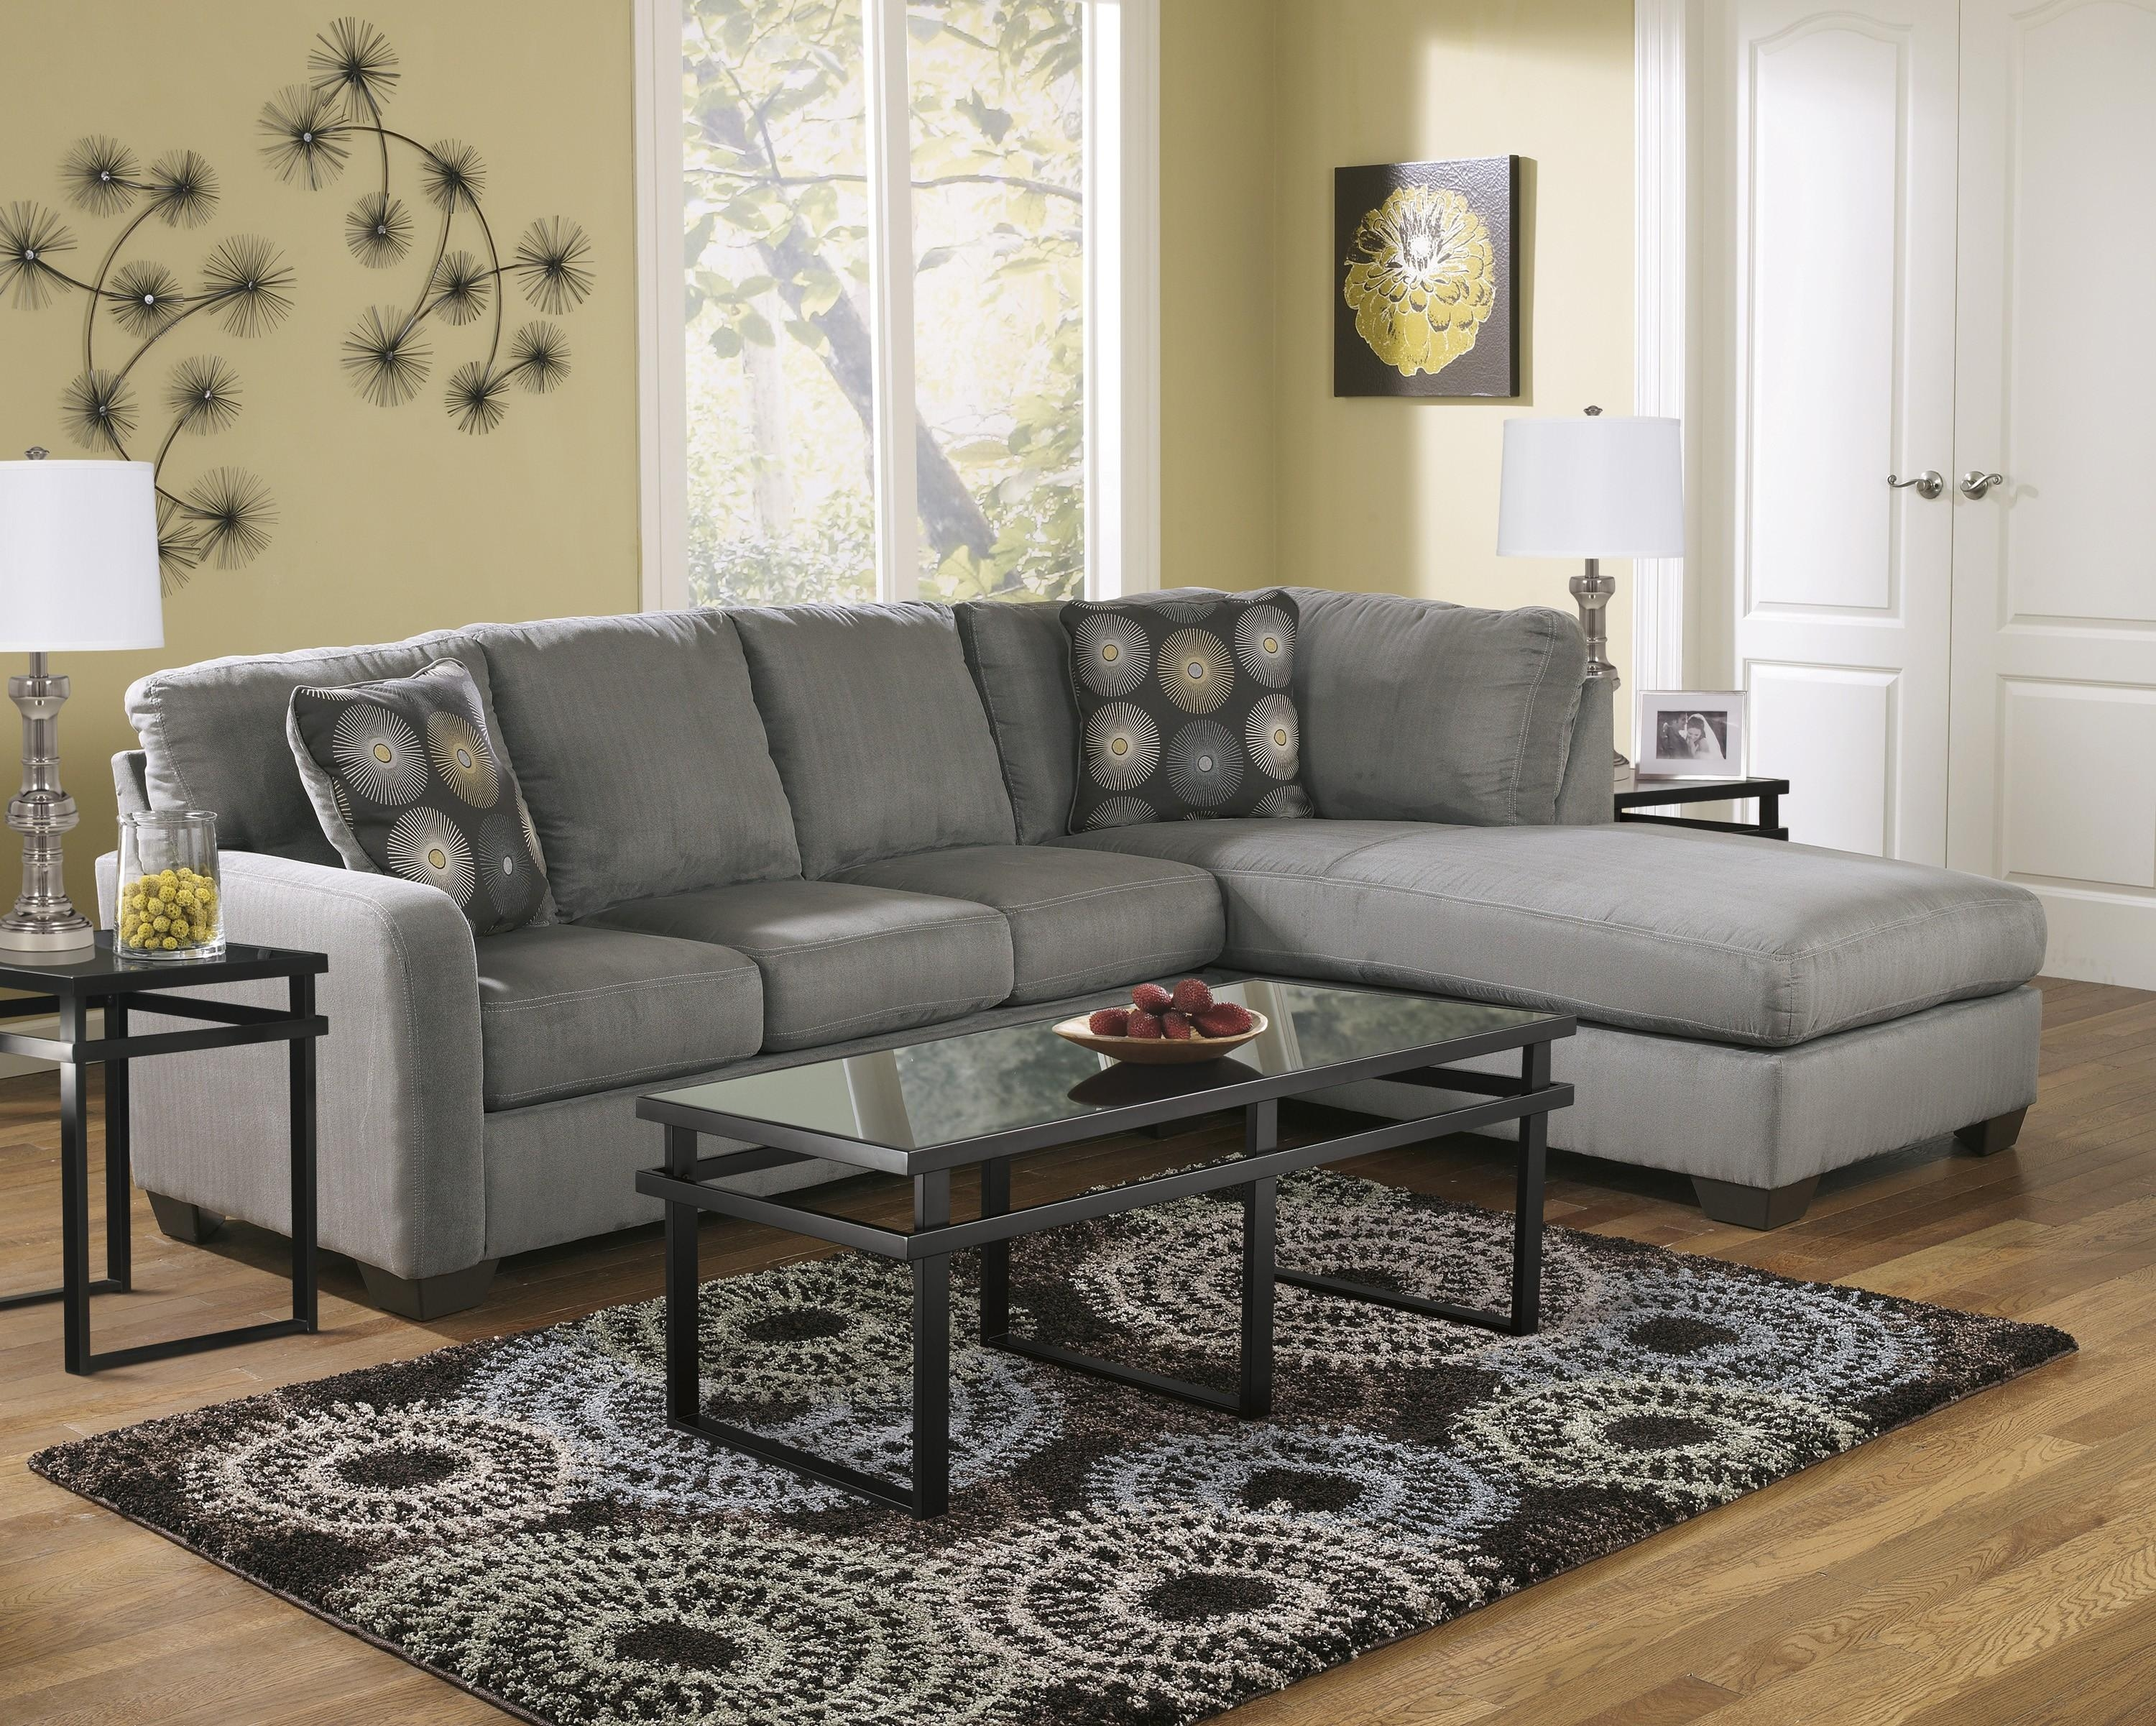 Zella Charcoal 2 Piece Sectional Sofa For $ (Image 20 of 20)